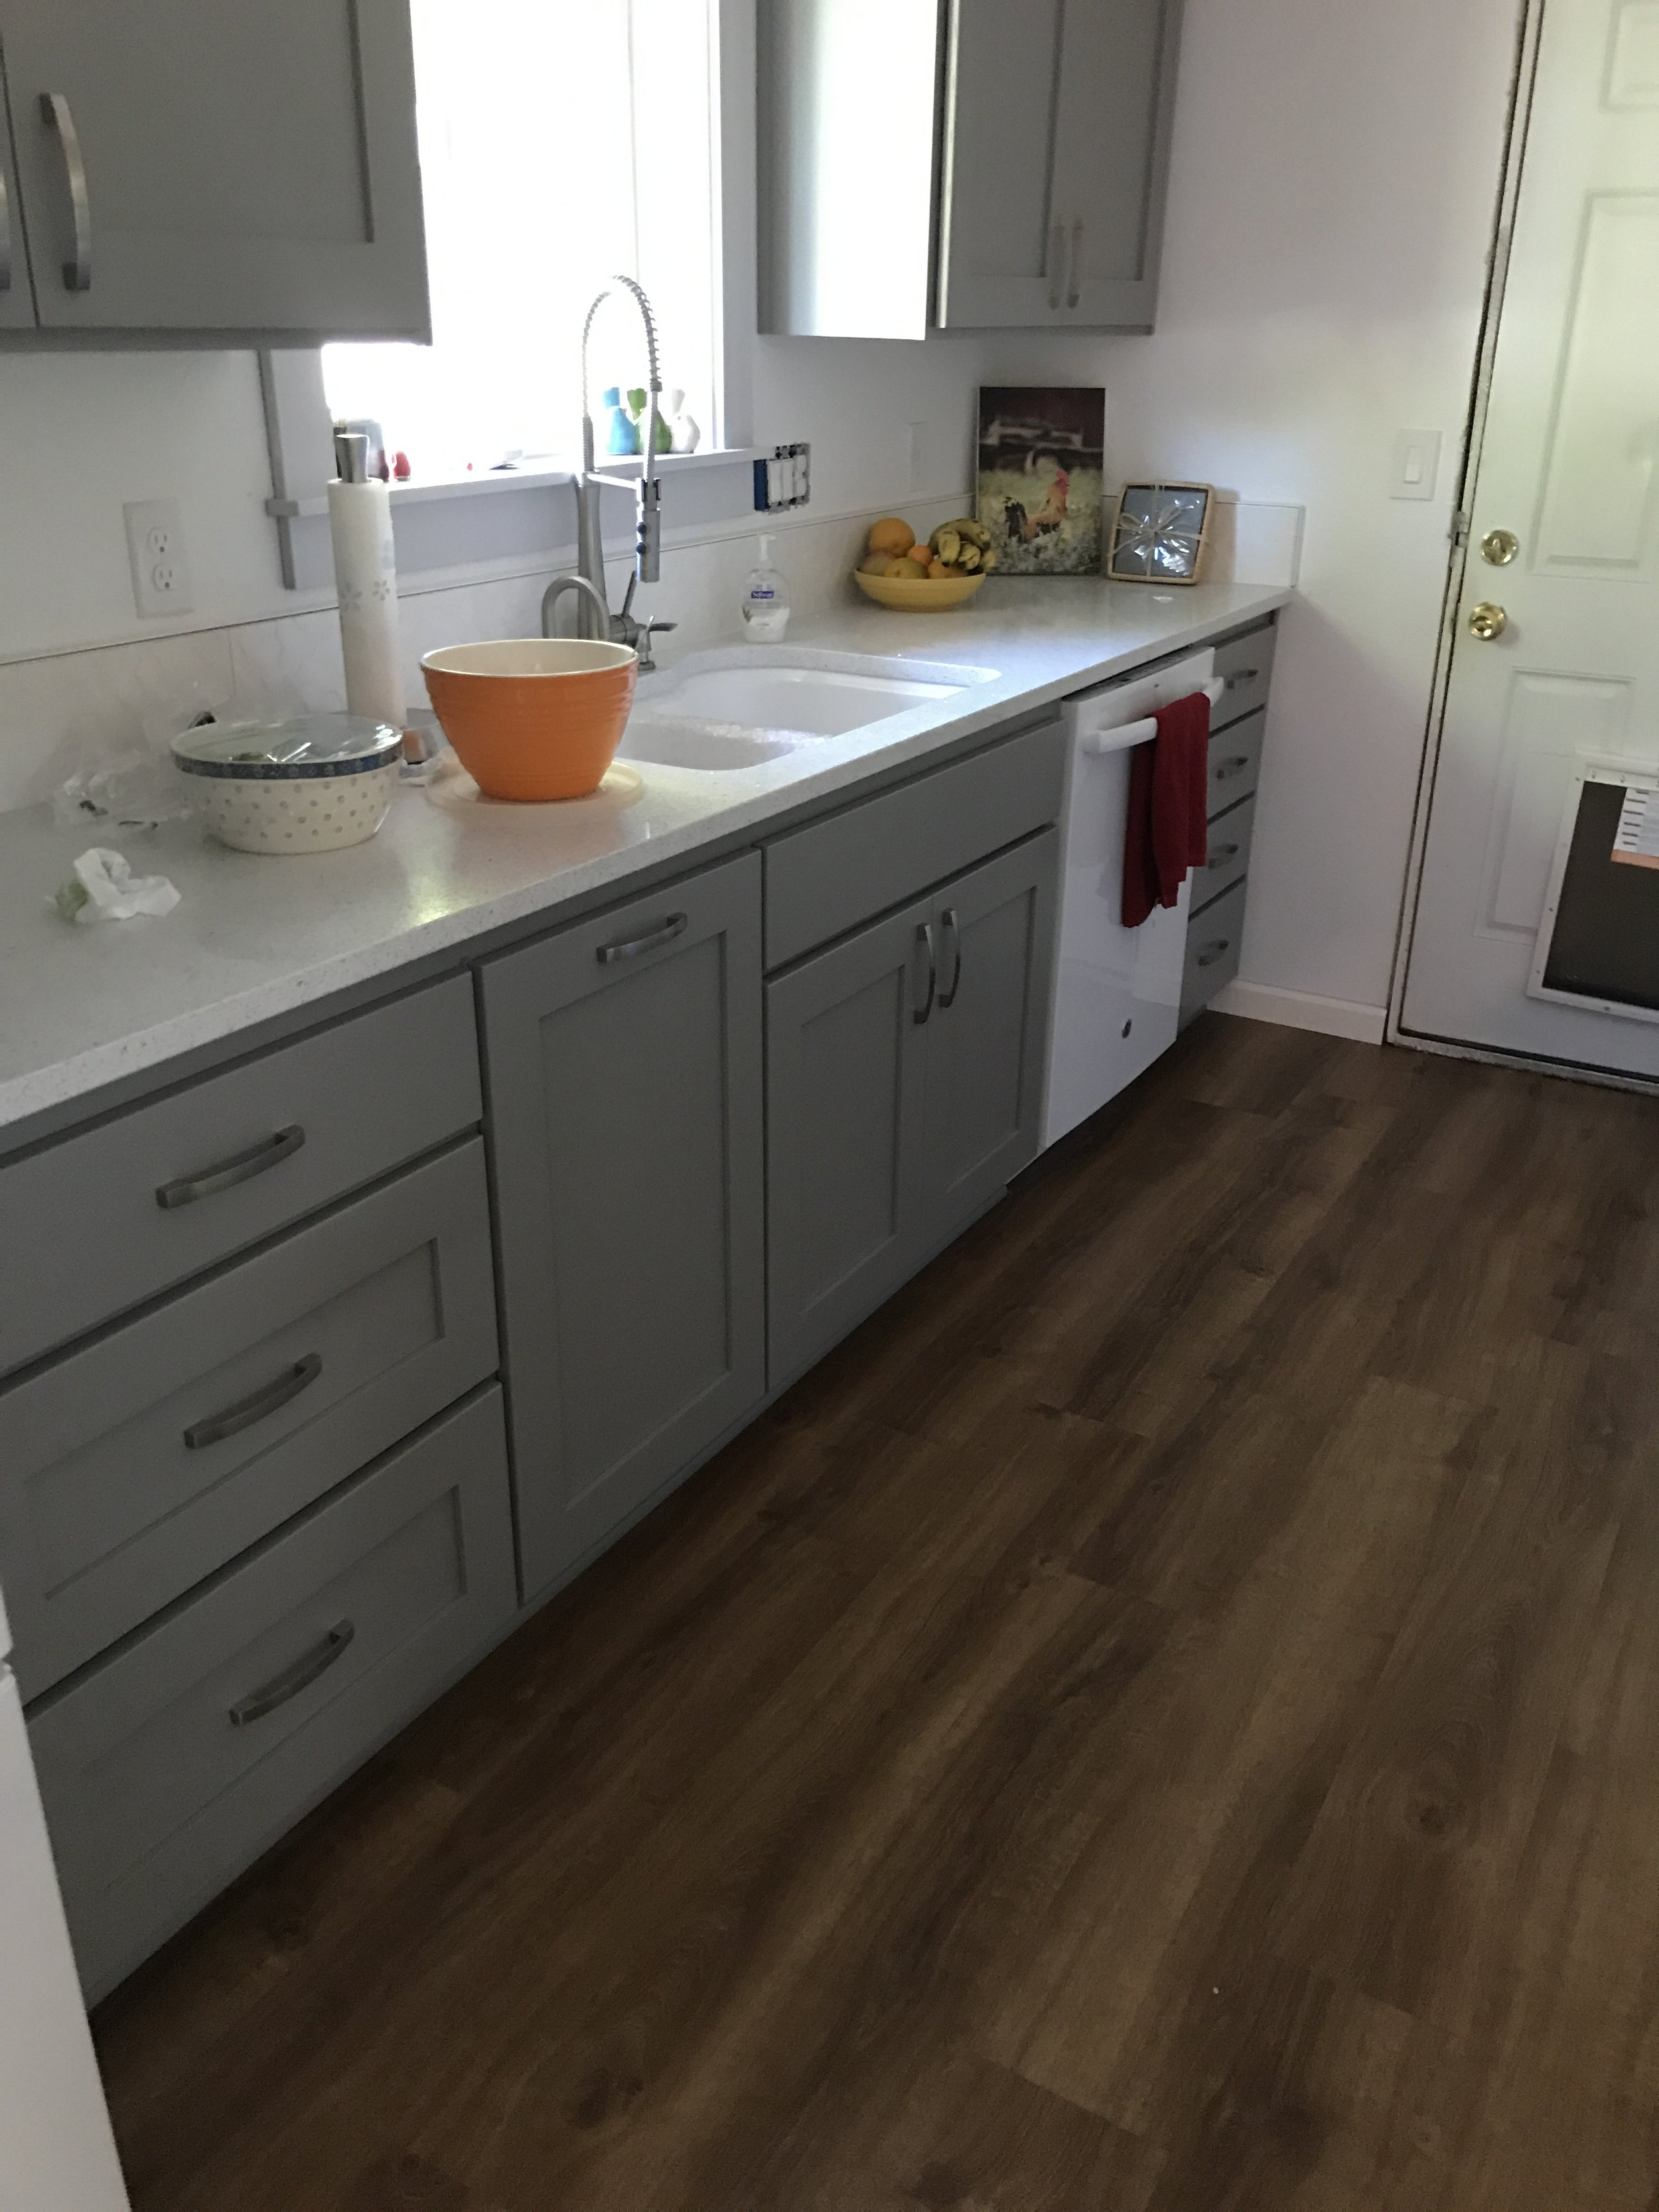 Saunders Countertop & Backsplash.jpg